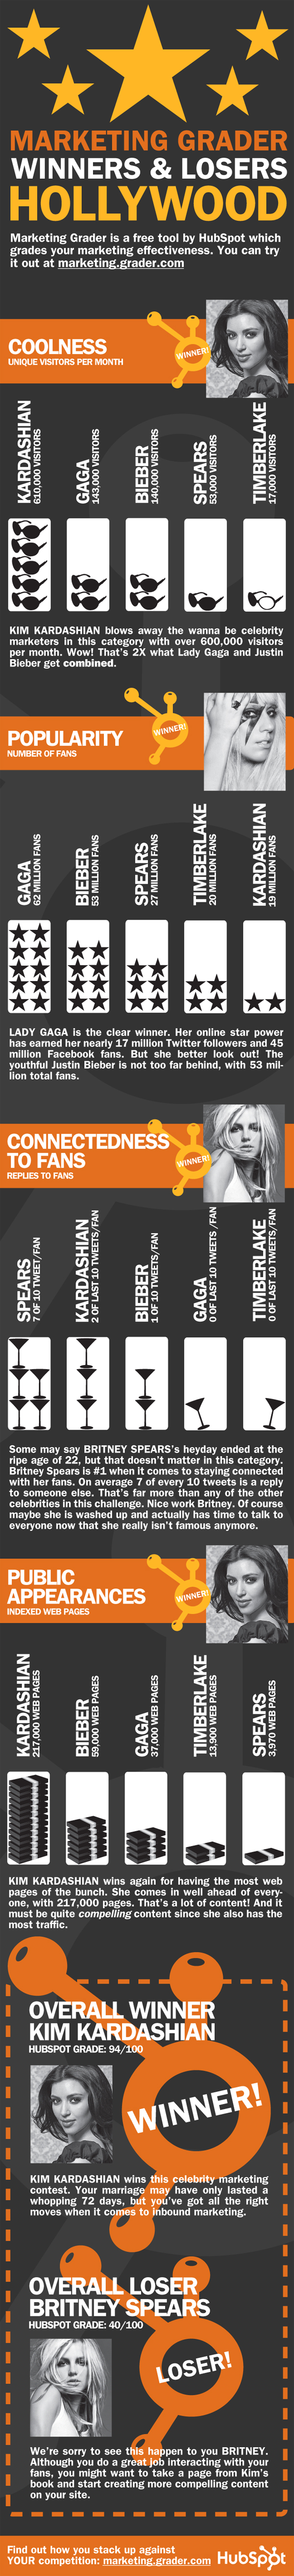 MarketingGrader Celebrity Infographic resized 600